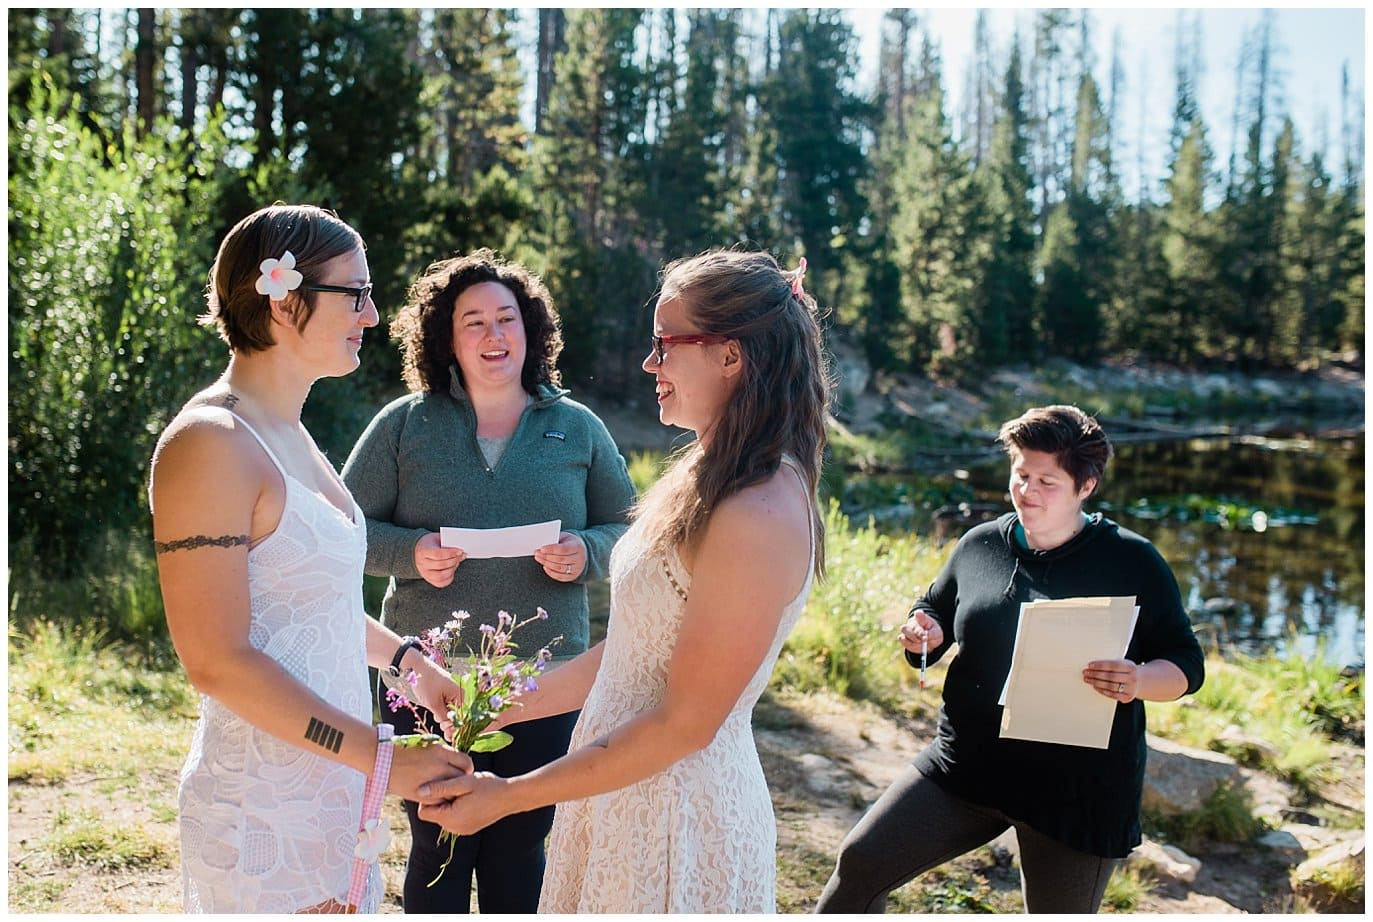 Vows by Lily Lake at sunrise photo